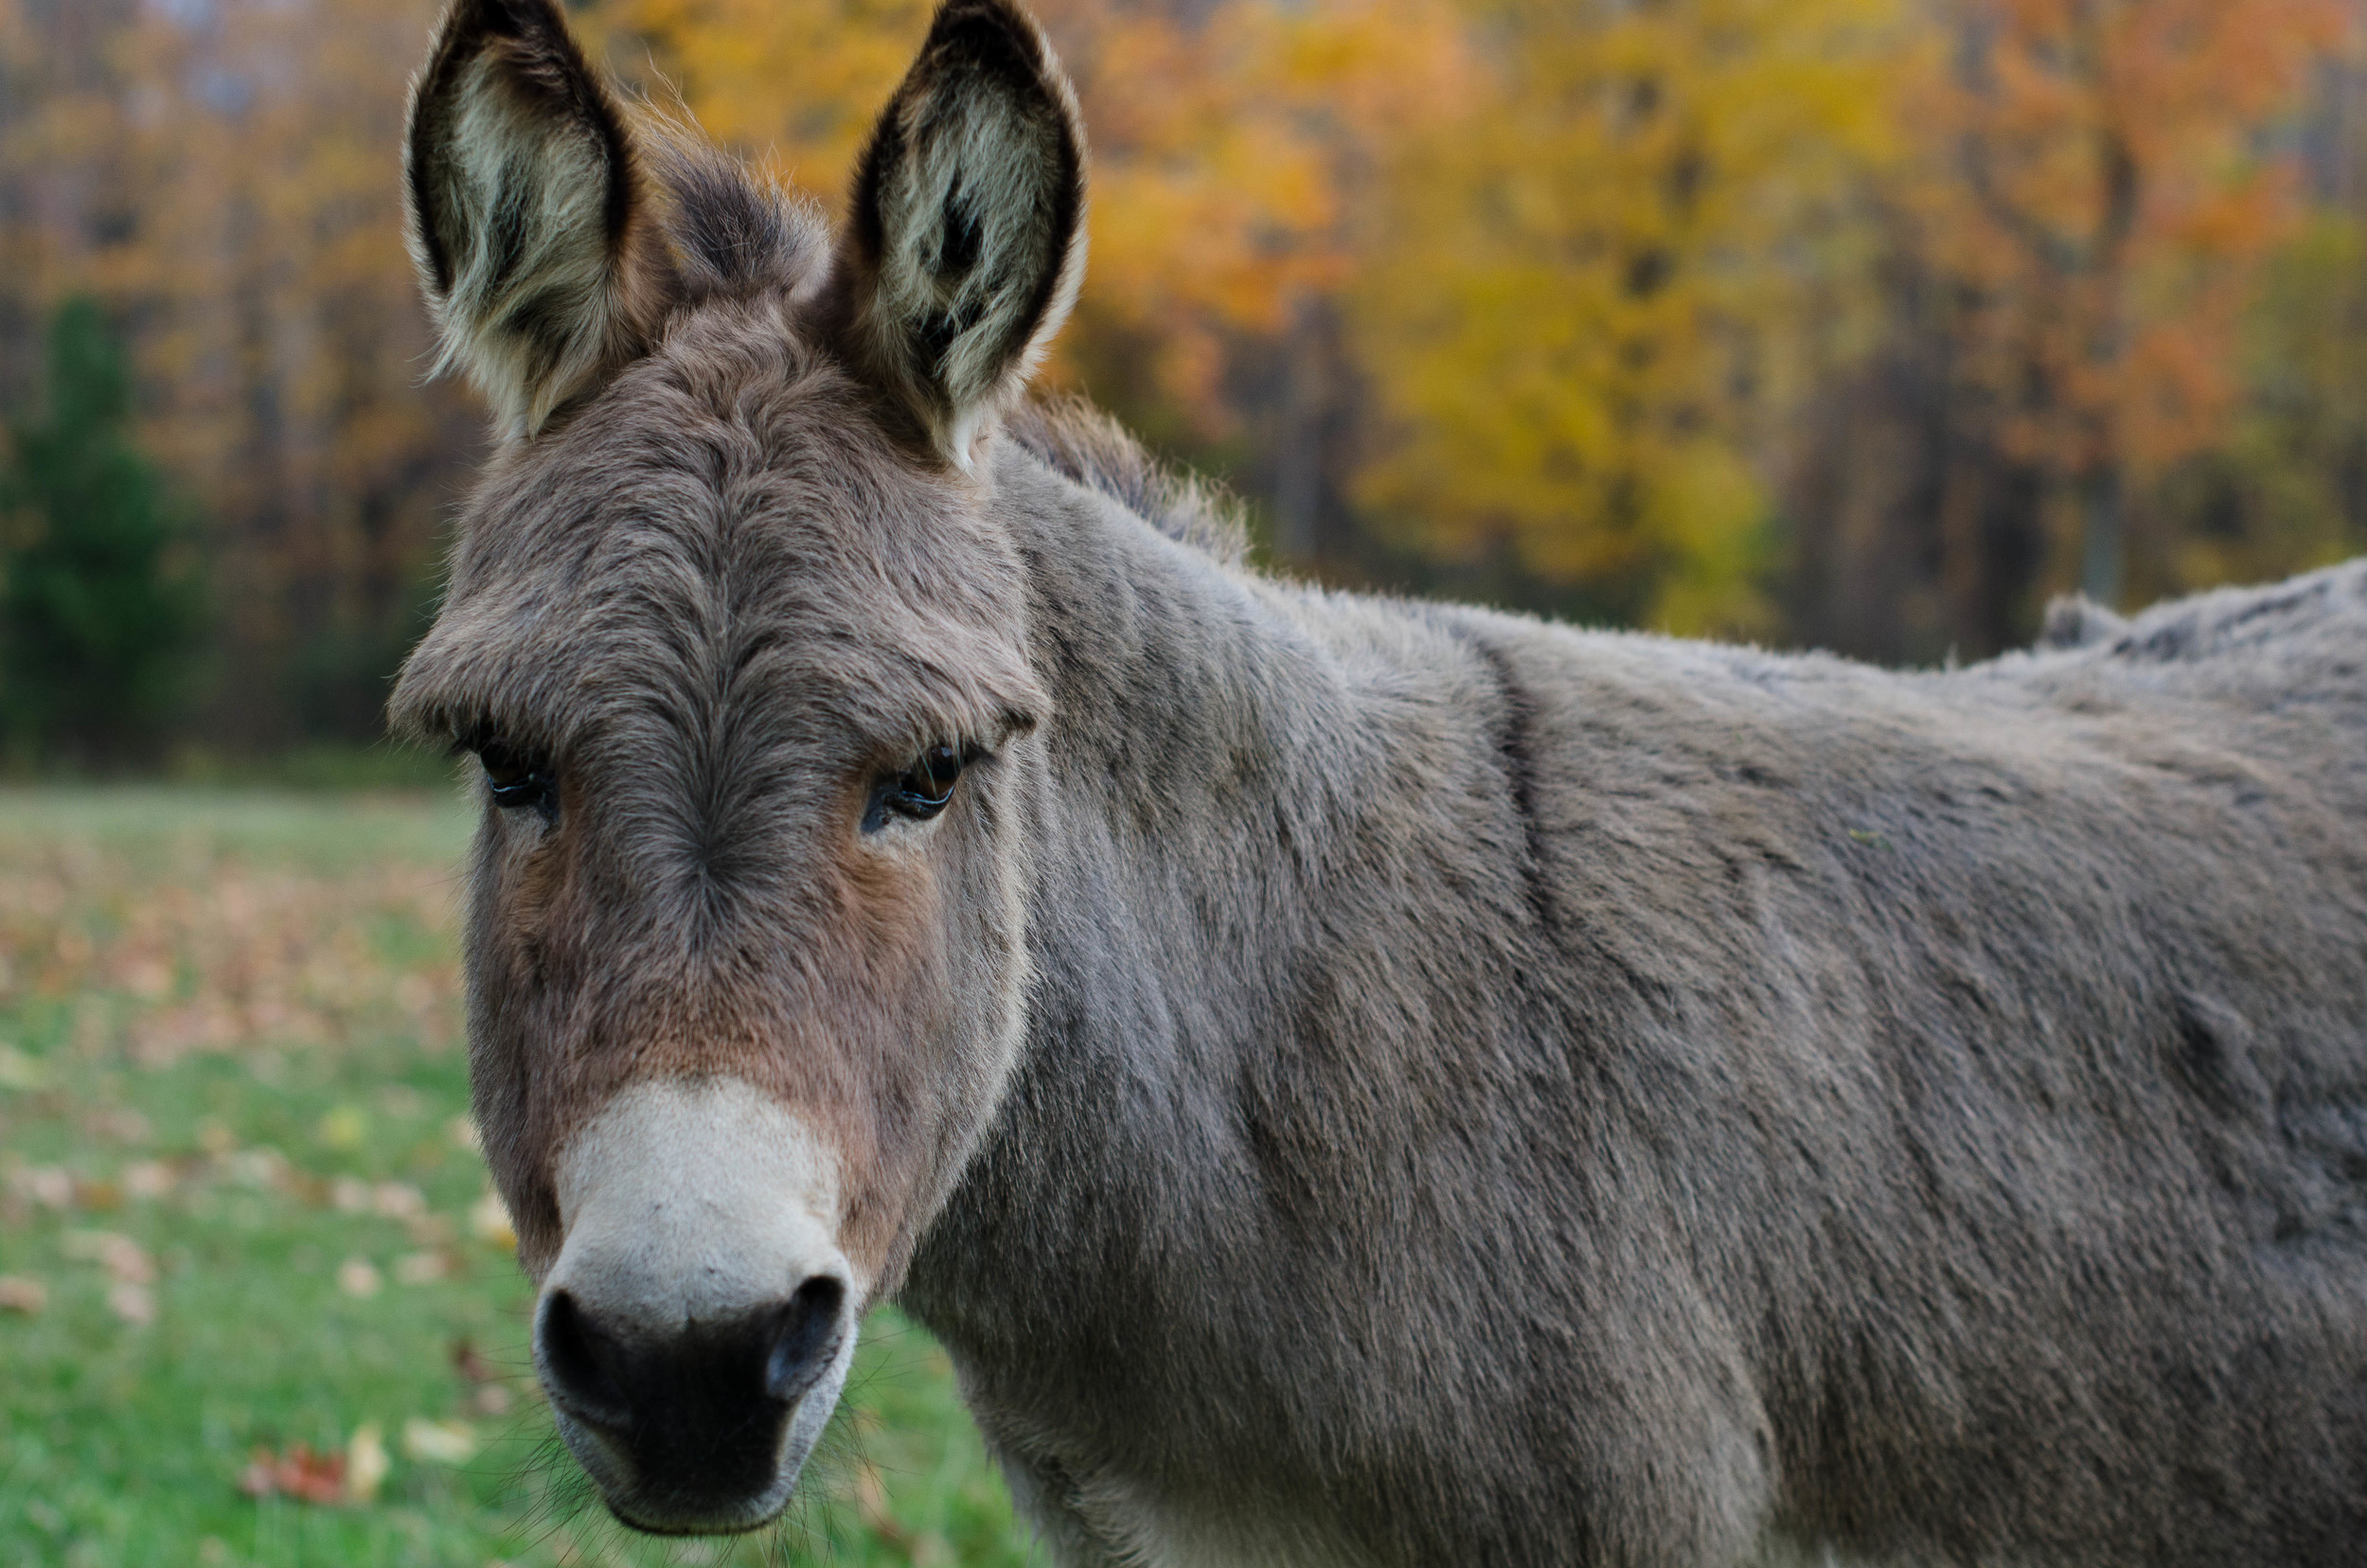 One of the three donkeys on the farm